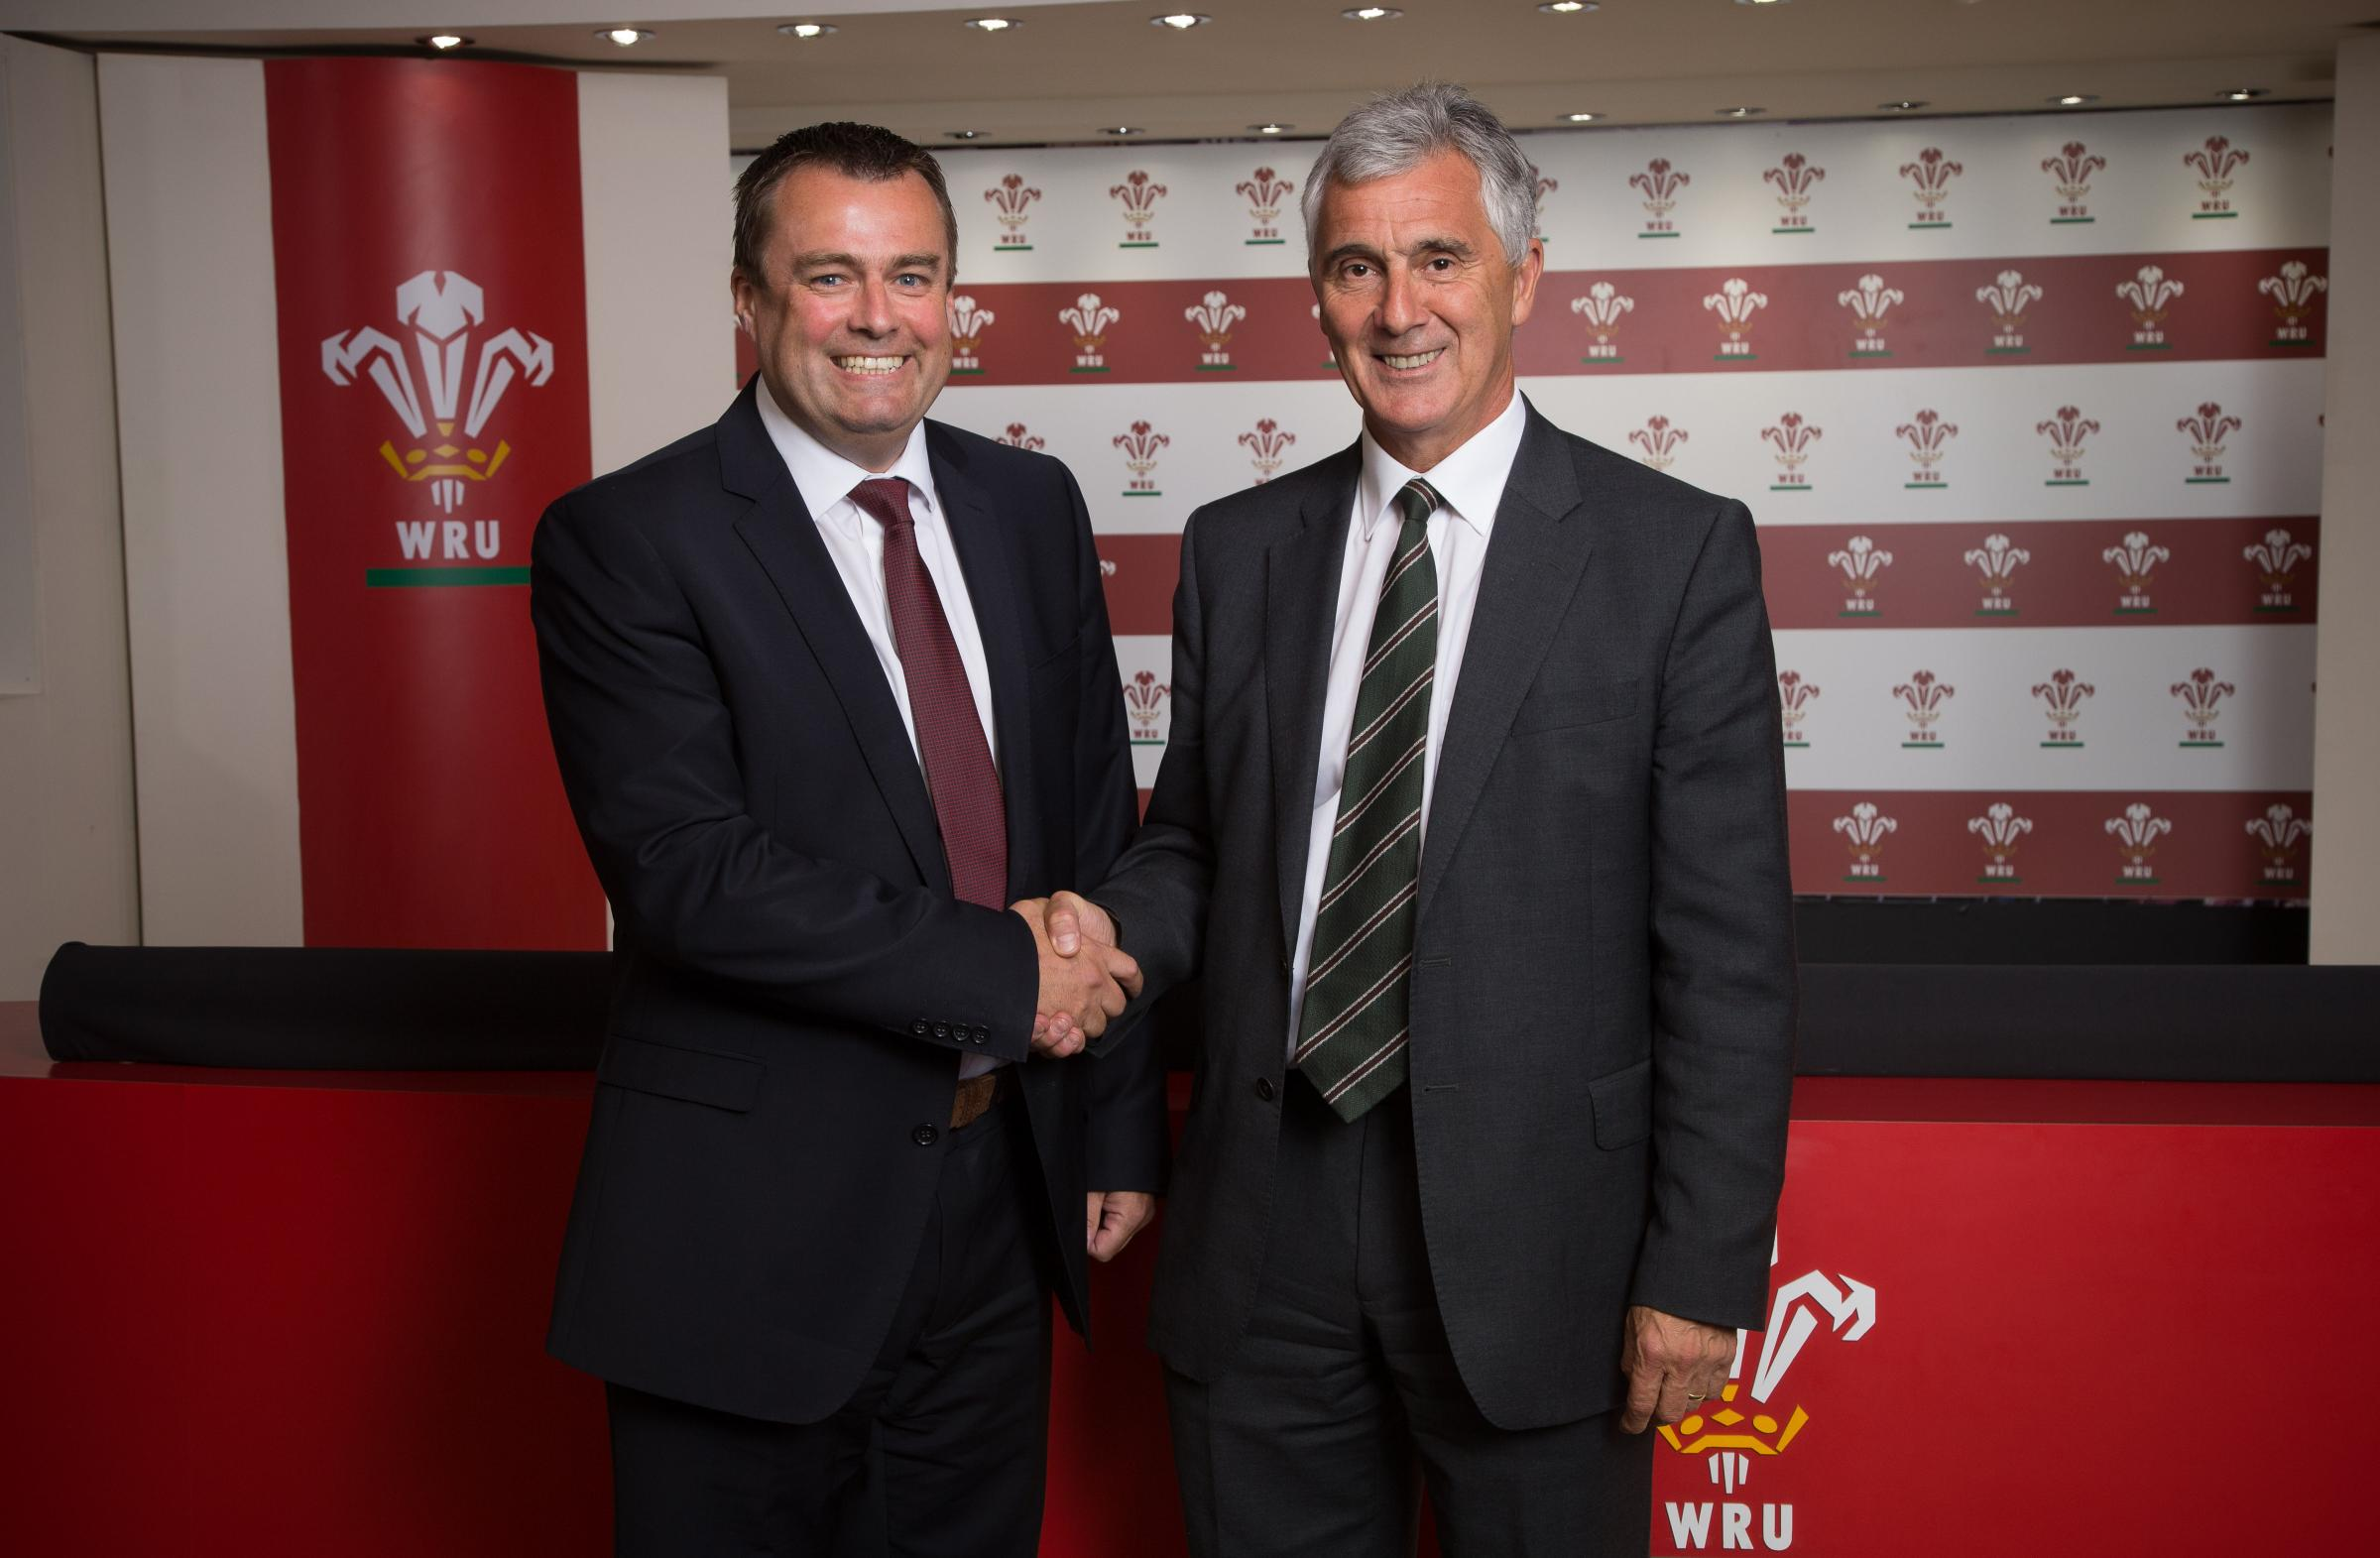 AGREEMENT CLOSE: WRU chief executive Martyn Phillips, pictured on the left with chairman Gareth Davies when appointed in 2015, says a new deal with the regions is close